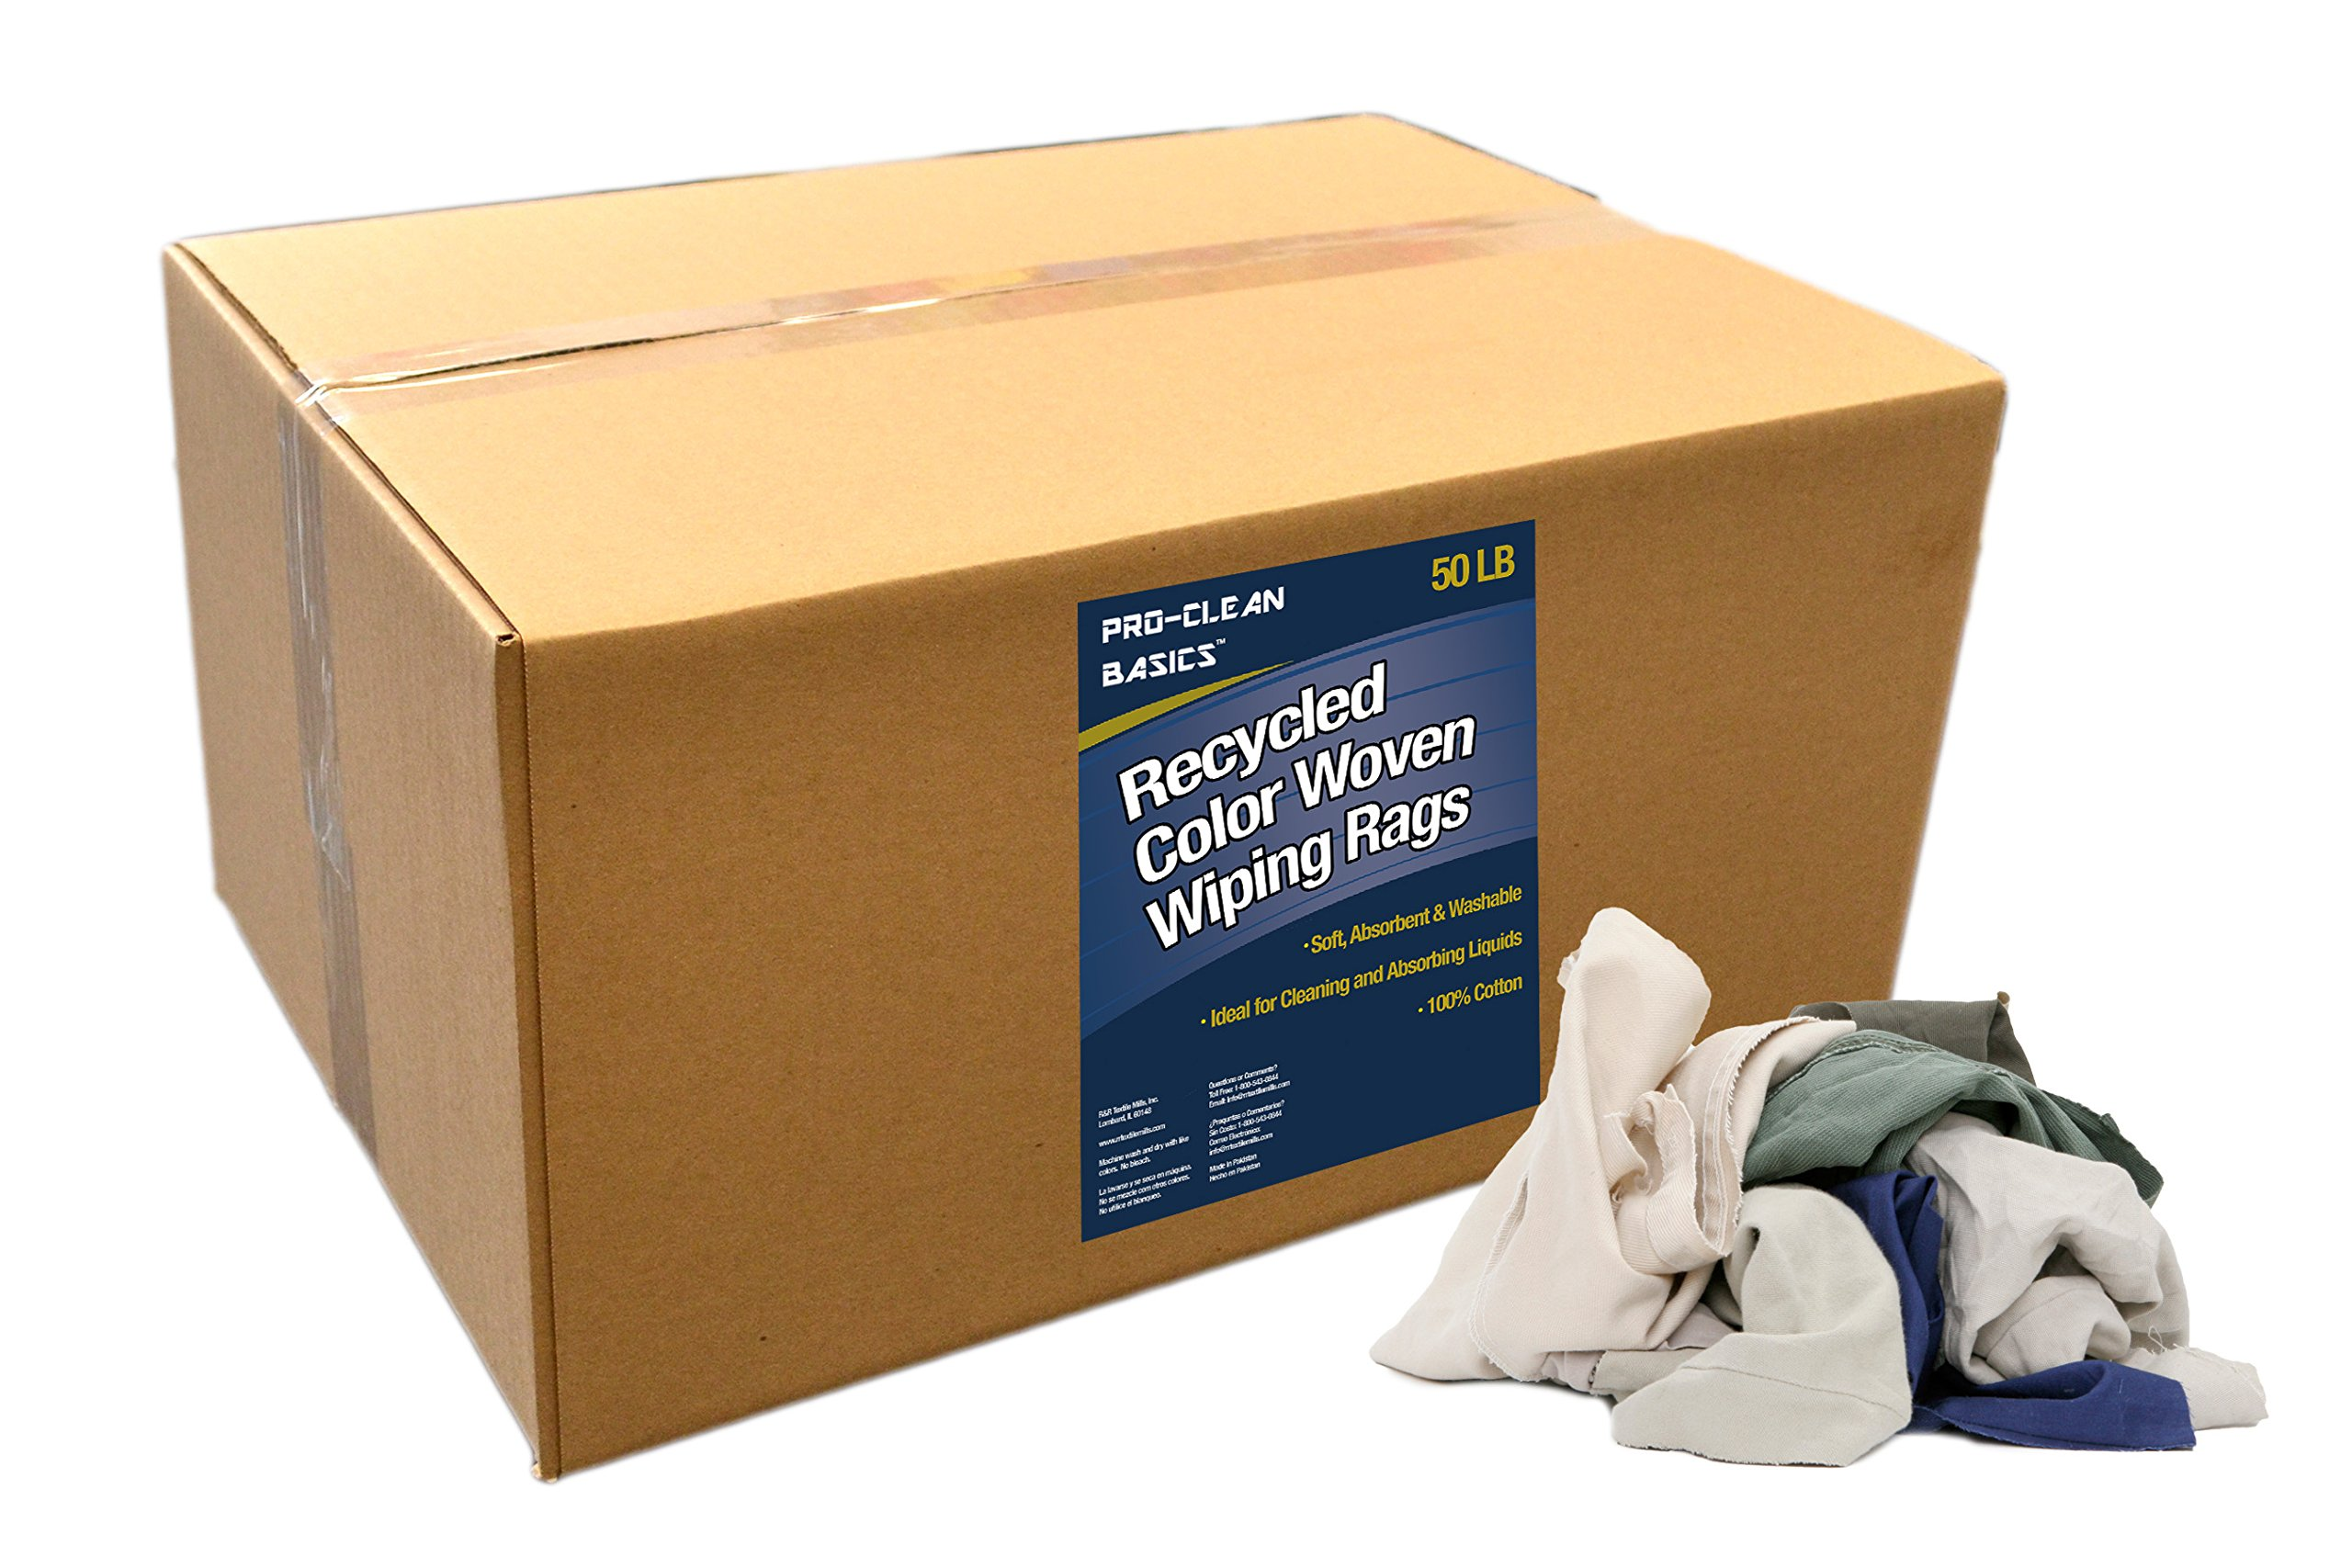 Pro-Clean Basics 99602 Recycled Color Woven Wiping Rags, 50 lb. Box by Pro-Clean Basics (Image #1)